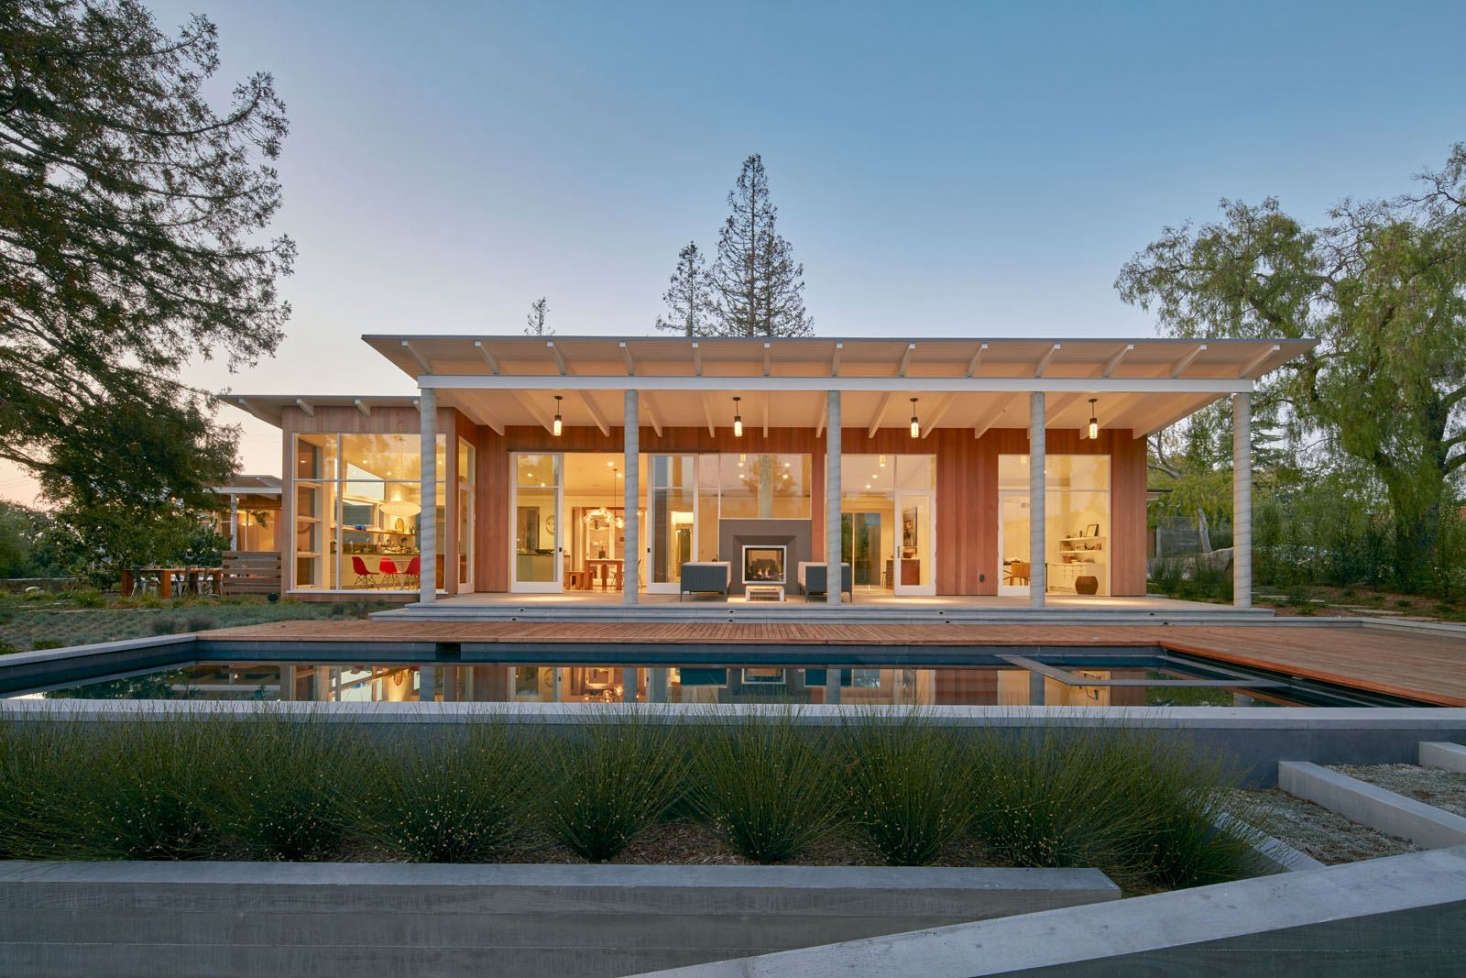 Silicon Valley Residence: Bruce Damonte